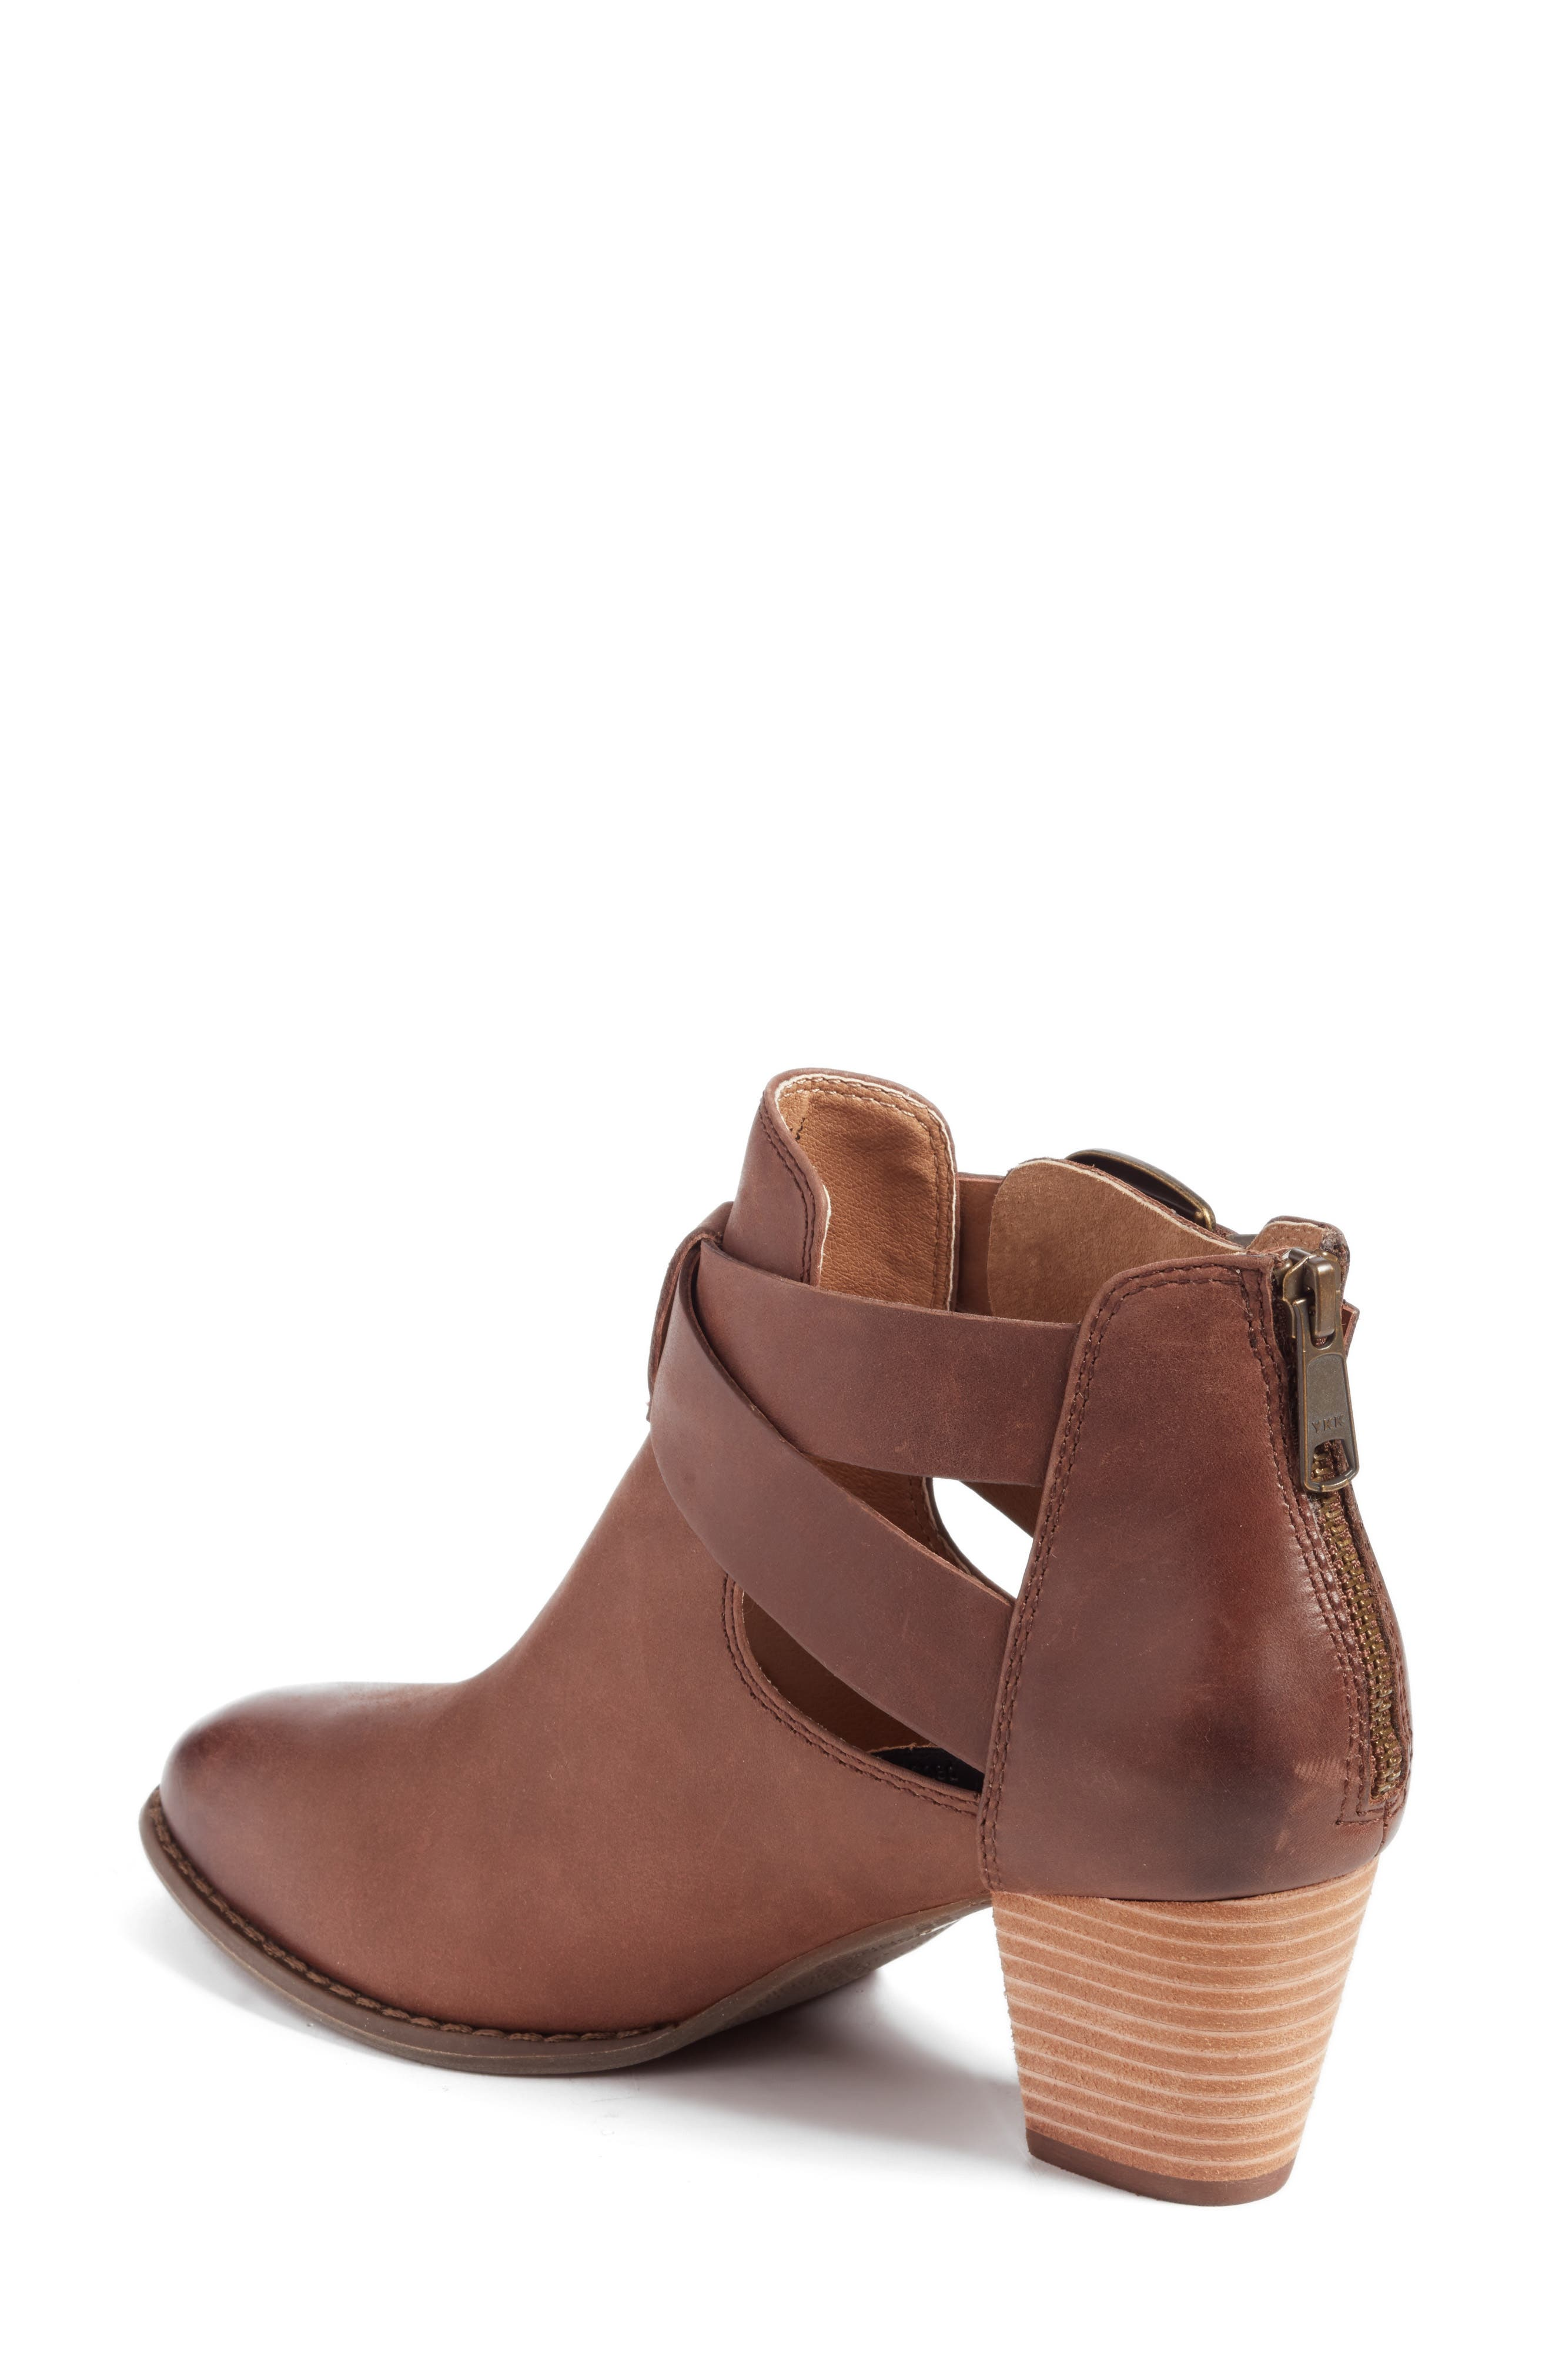 Alternate Image 2  - Vionic Rory Buckle Strap Bootie (Women)